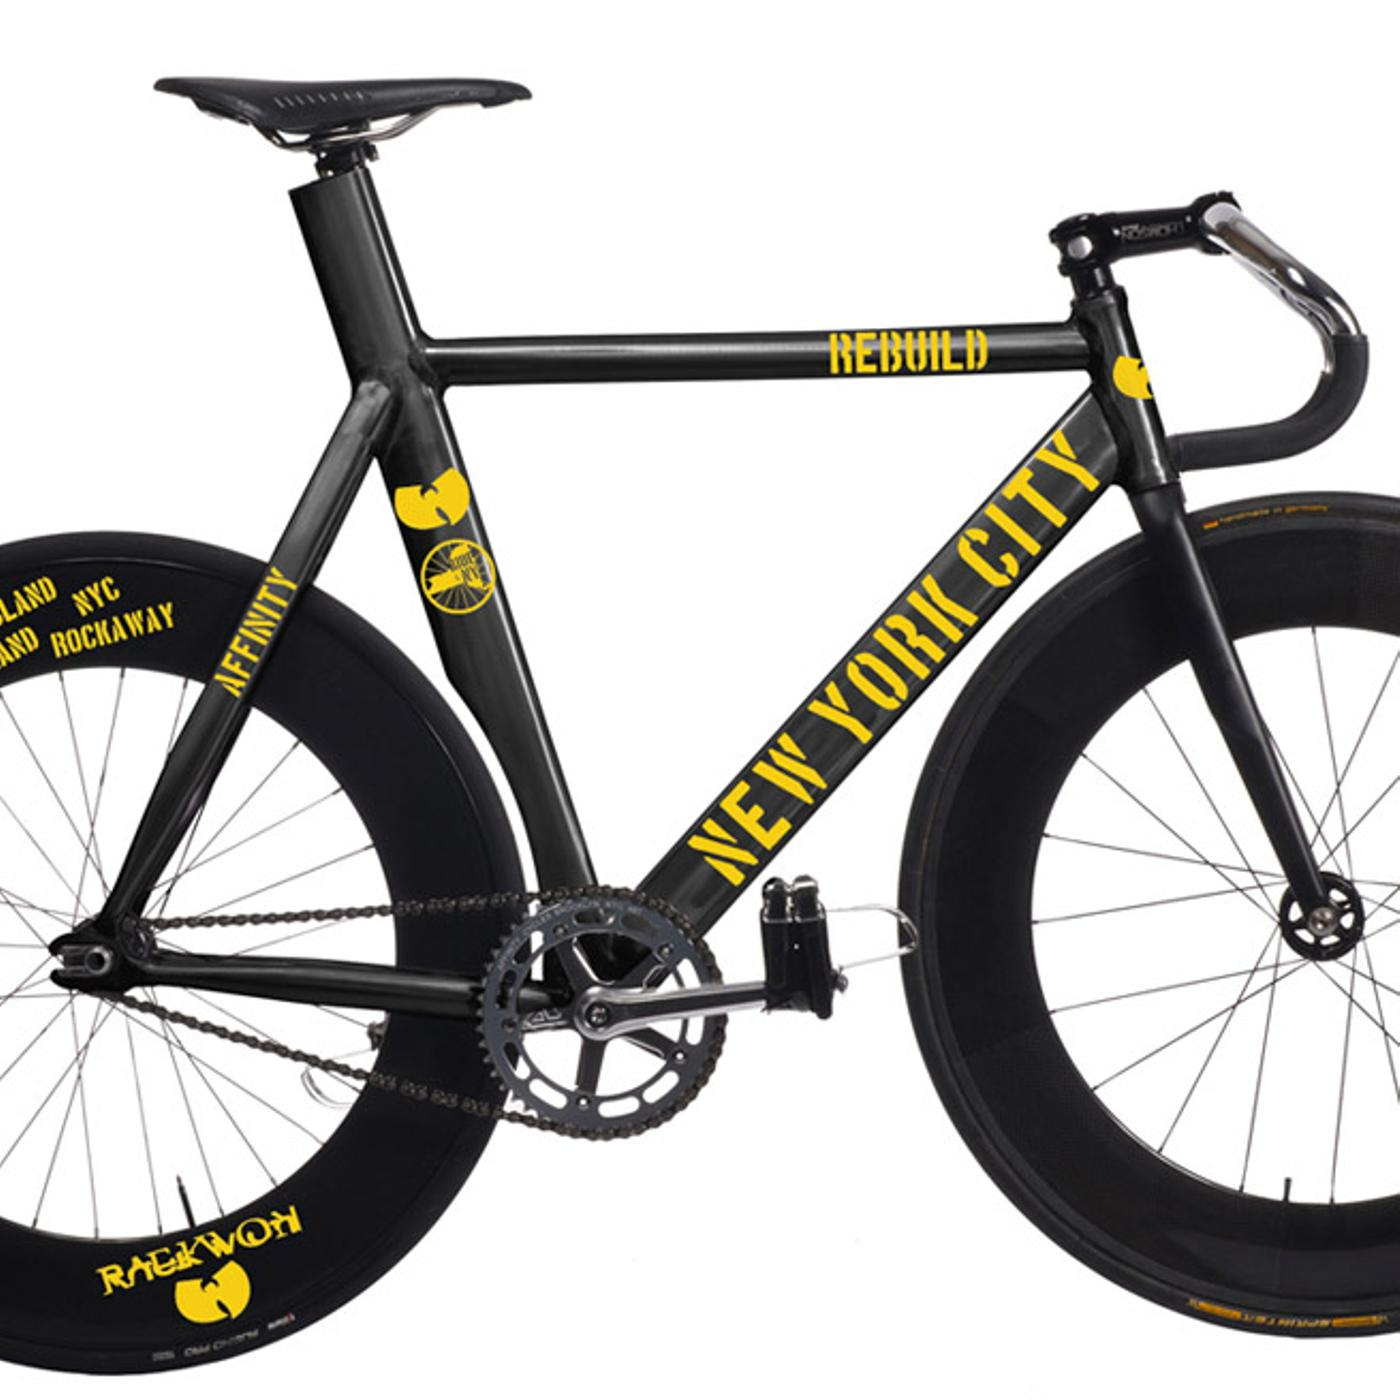 Affinity and Raekwon from the Wu Tang Present the Ride4NY Charity Bikes